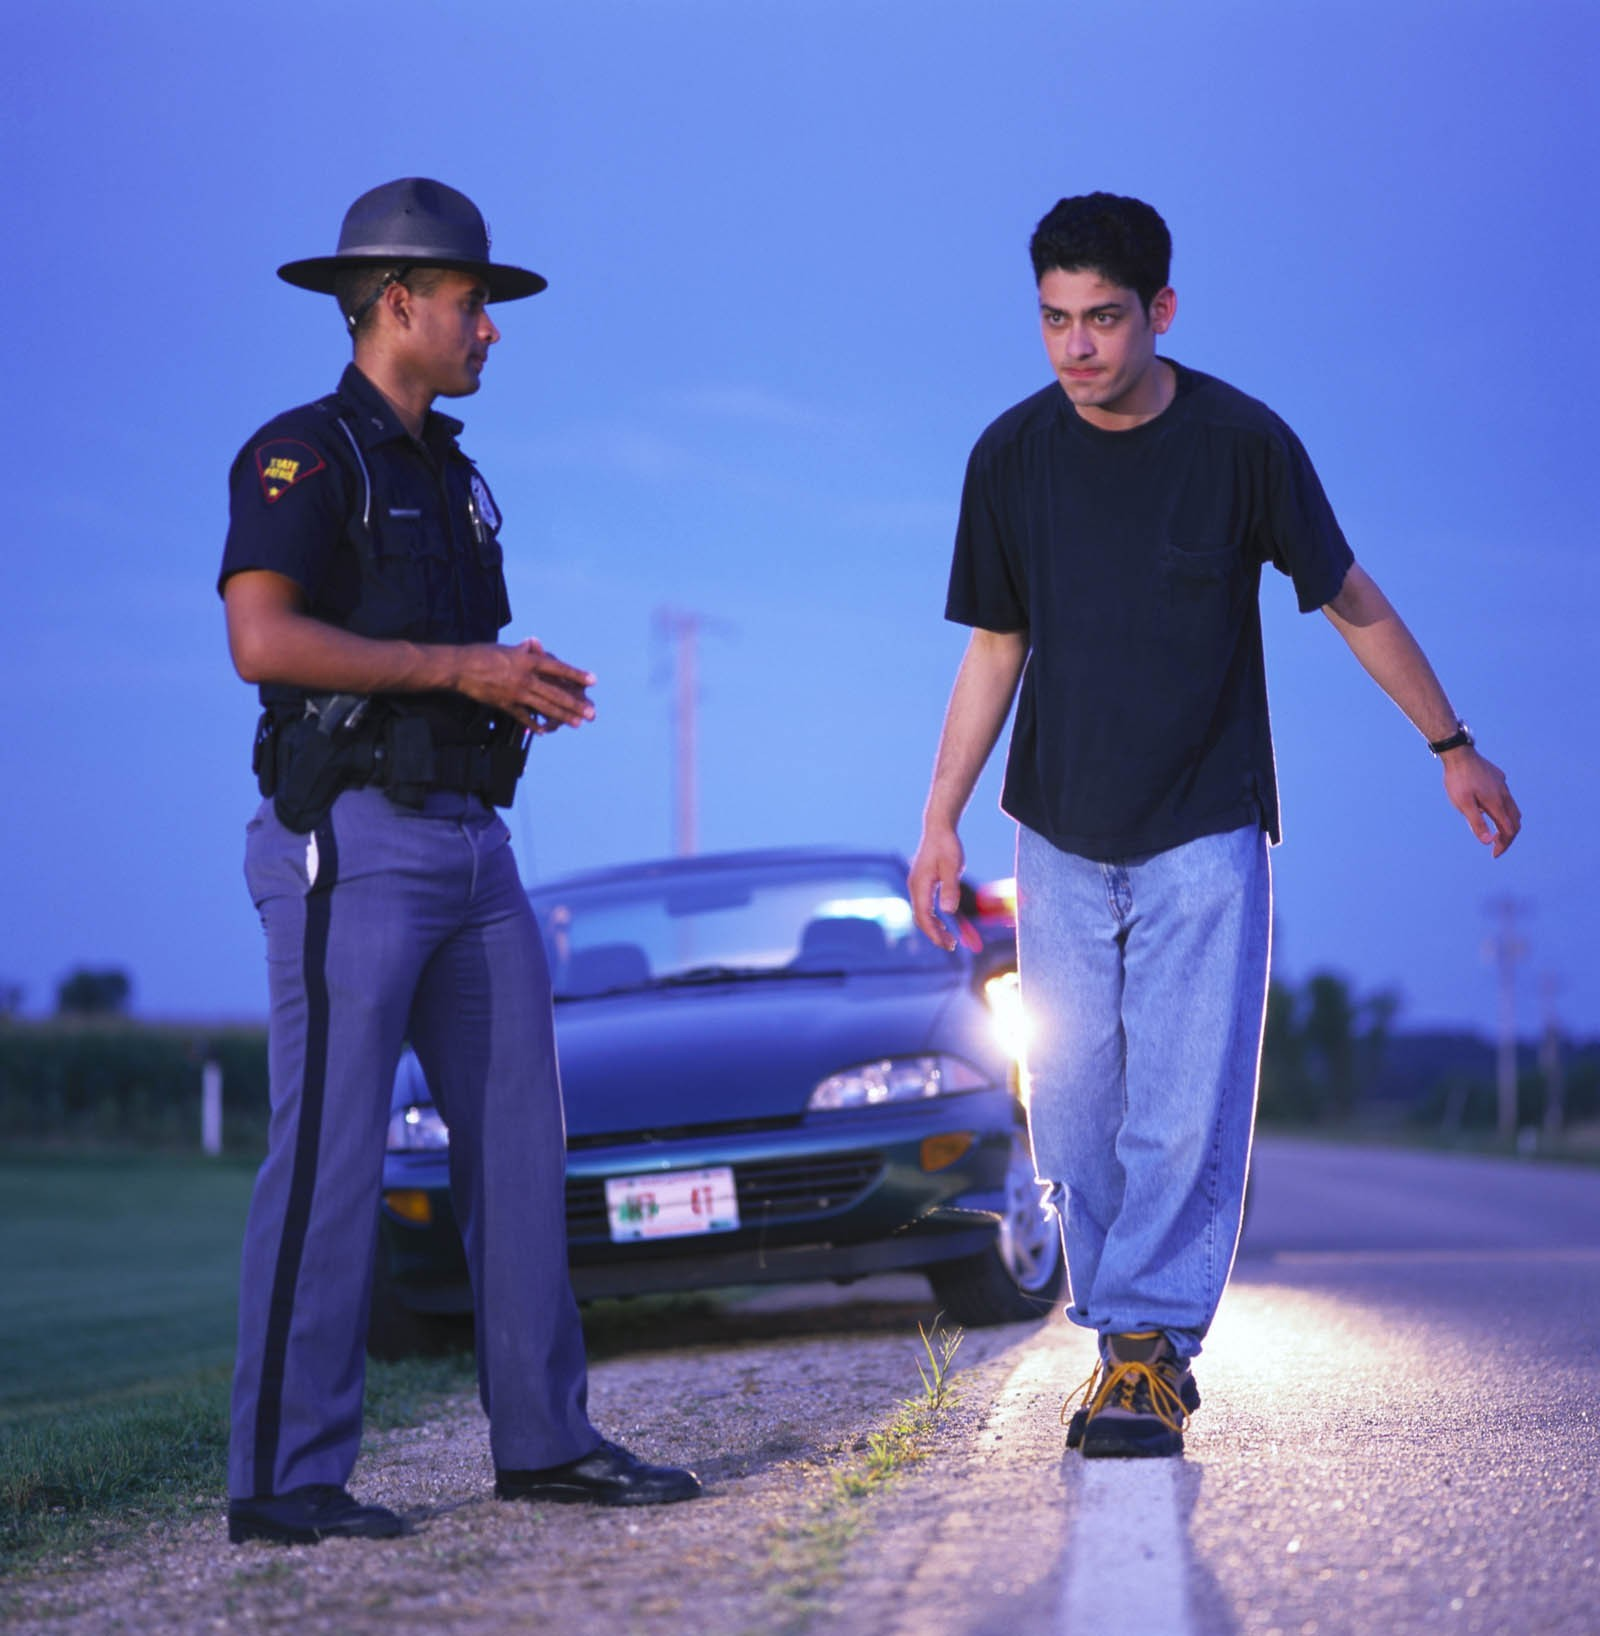 Tests for field sobriety